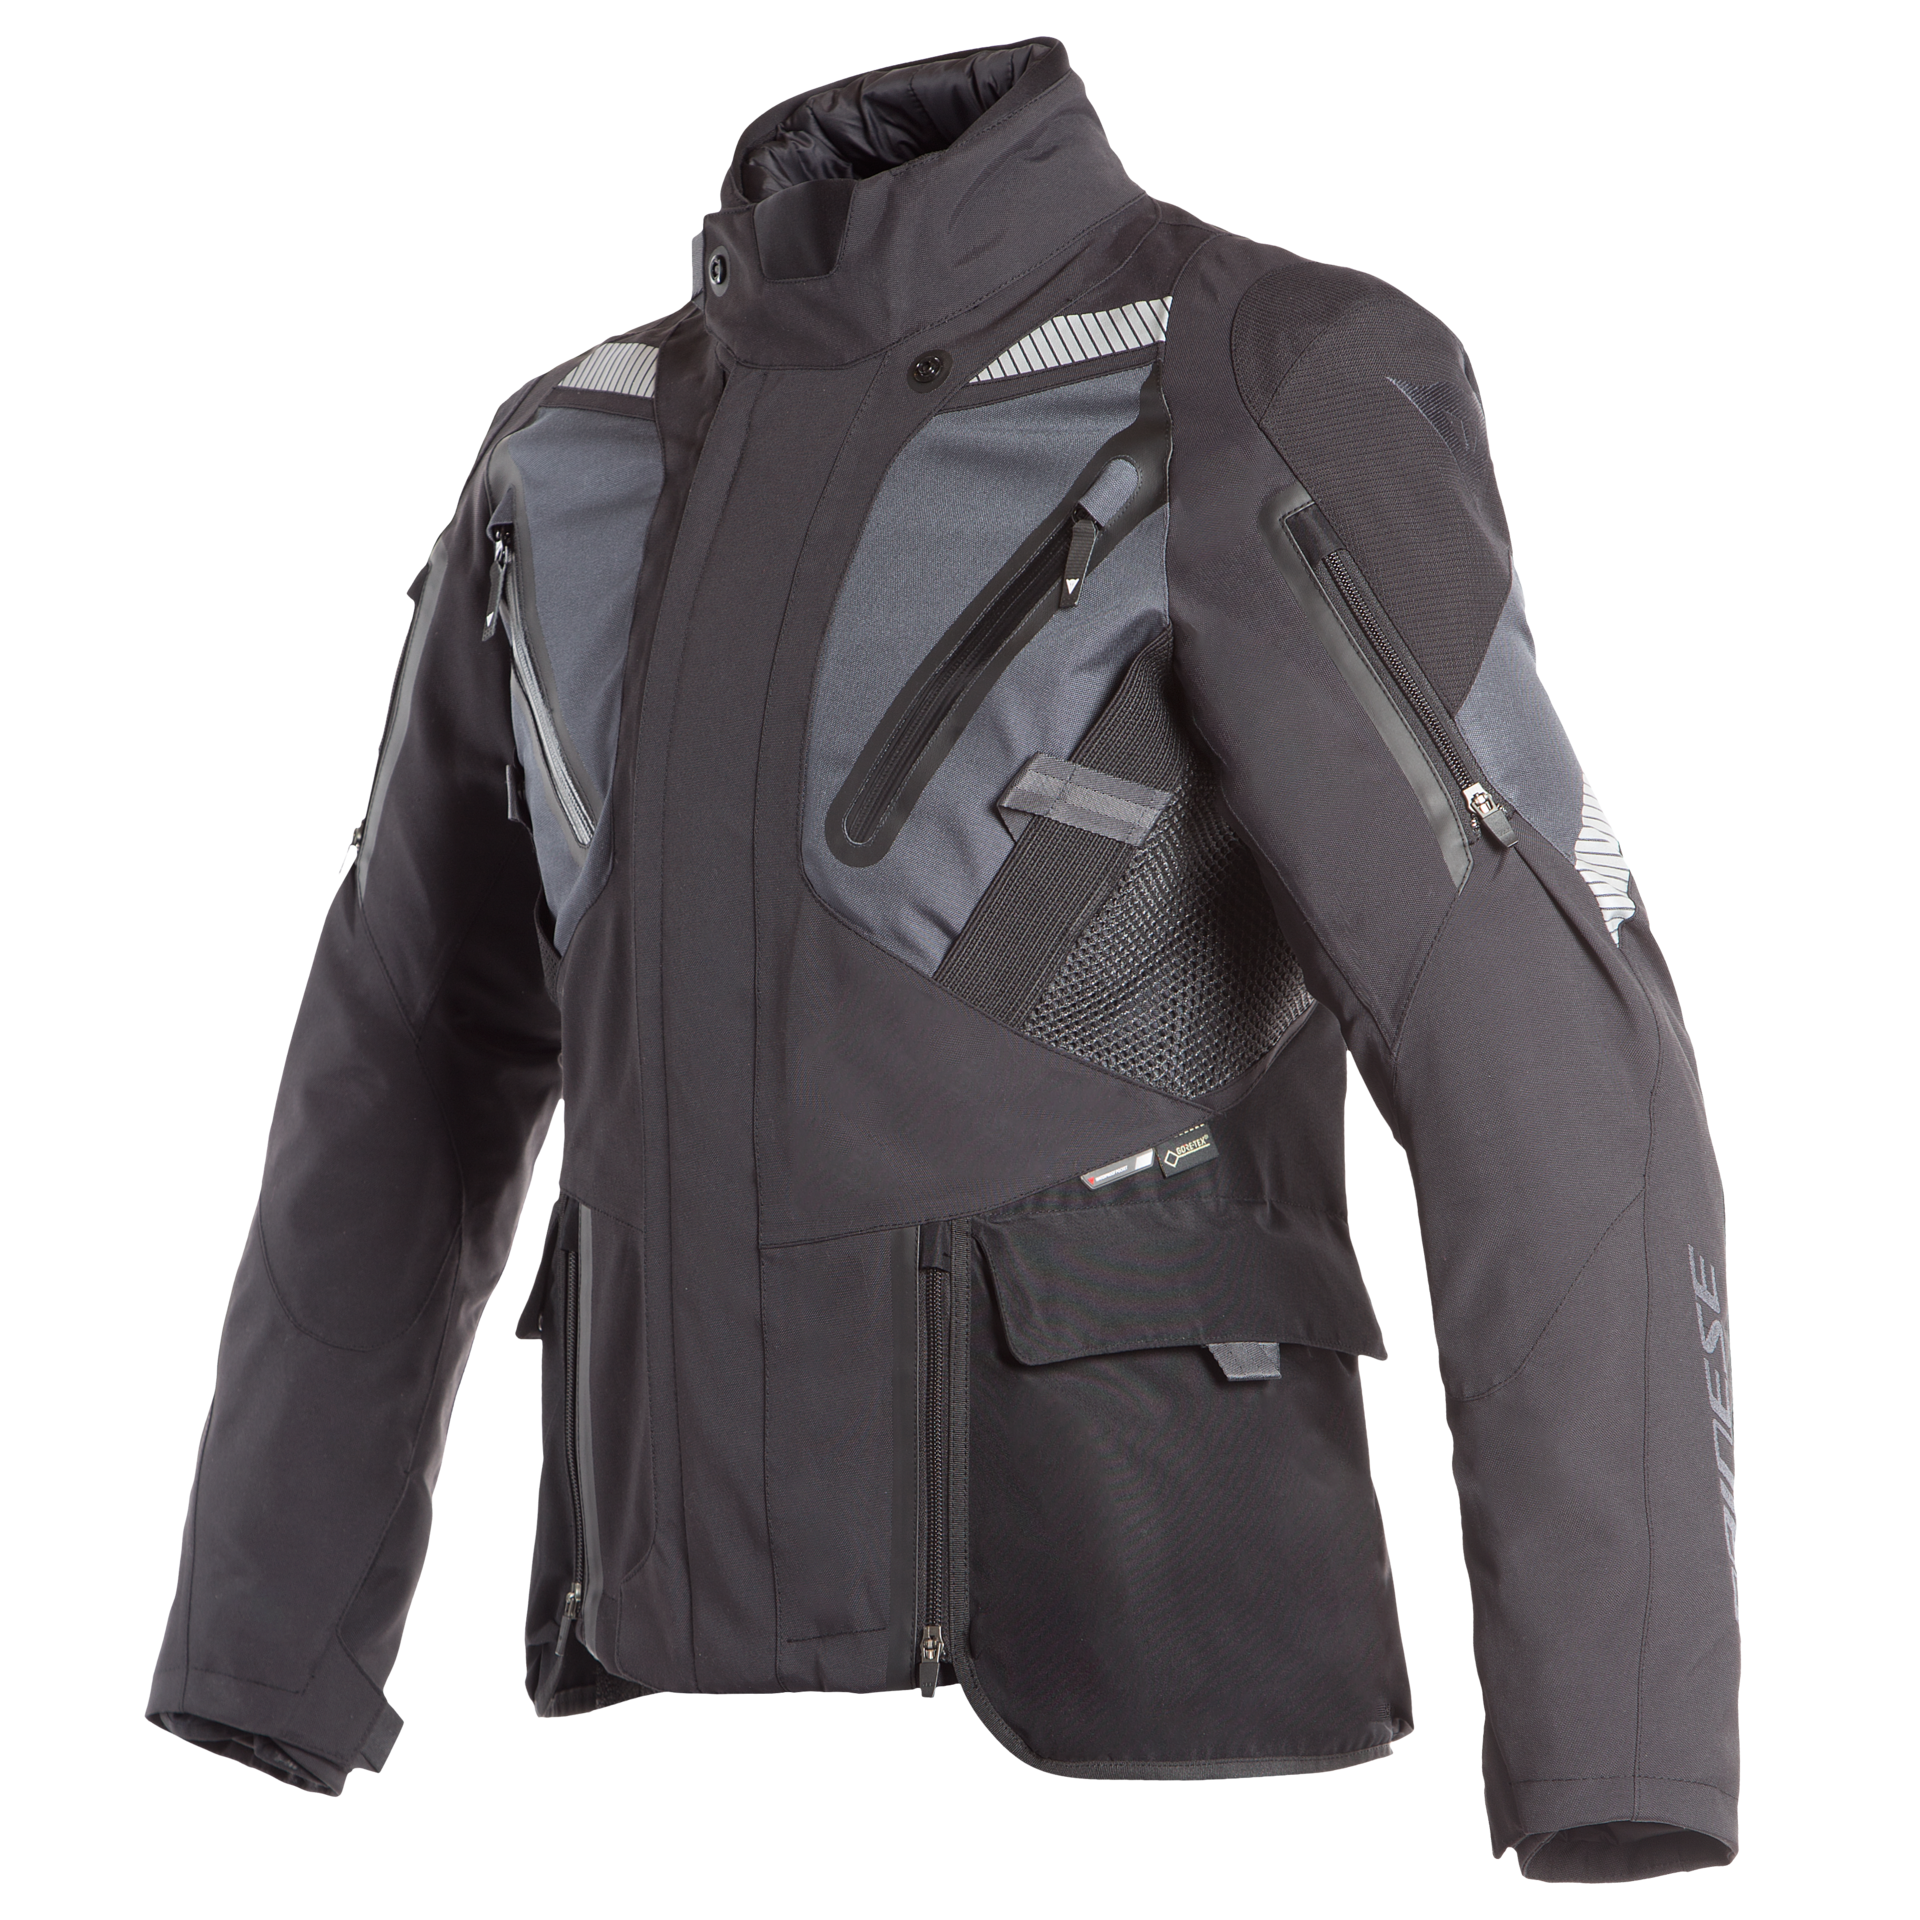 The Explorer range from Dainese is now available in UK D-Stores